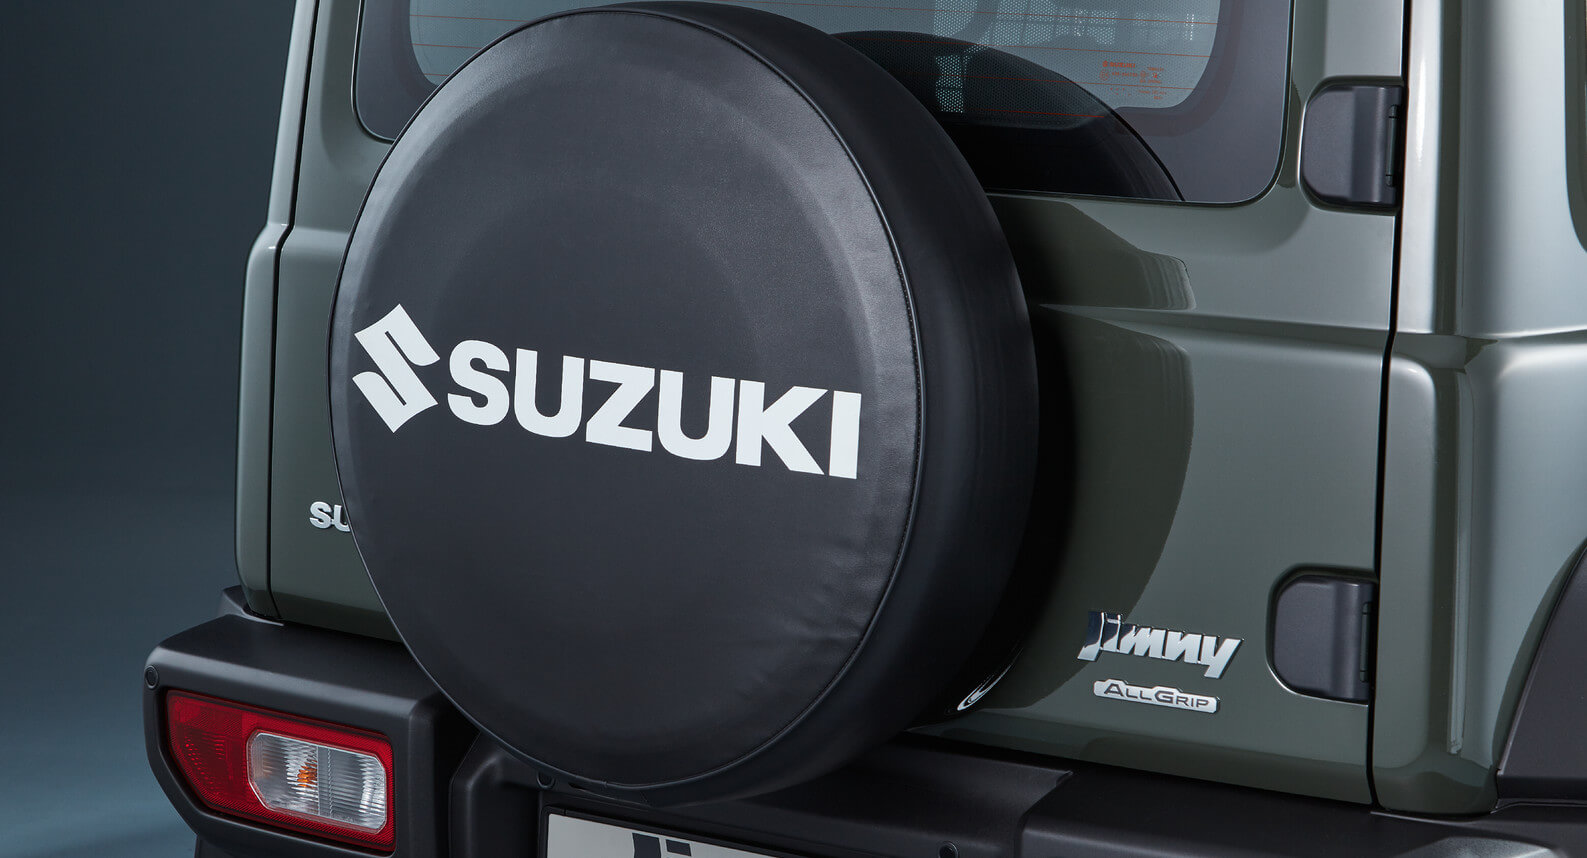 Jimny - Spare Tyre Cover, Soft